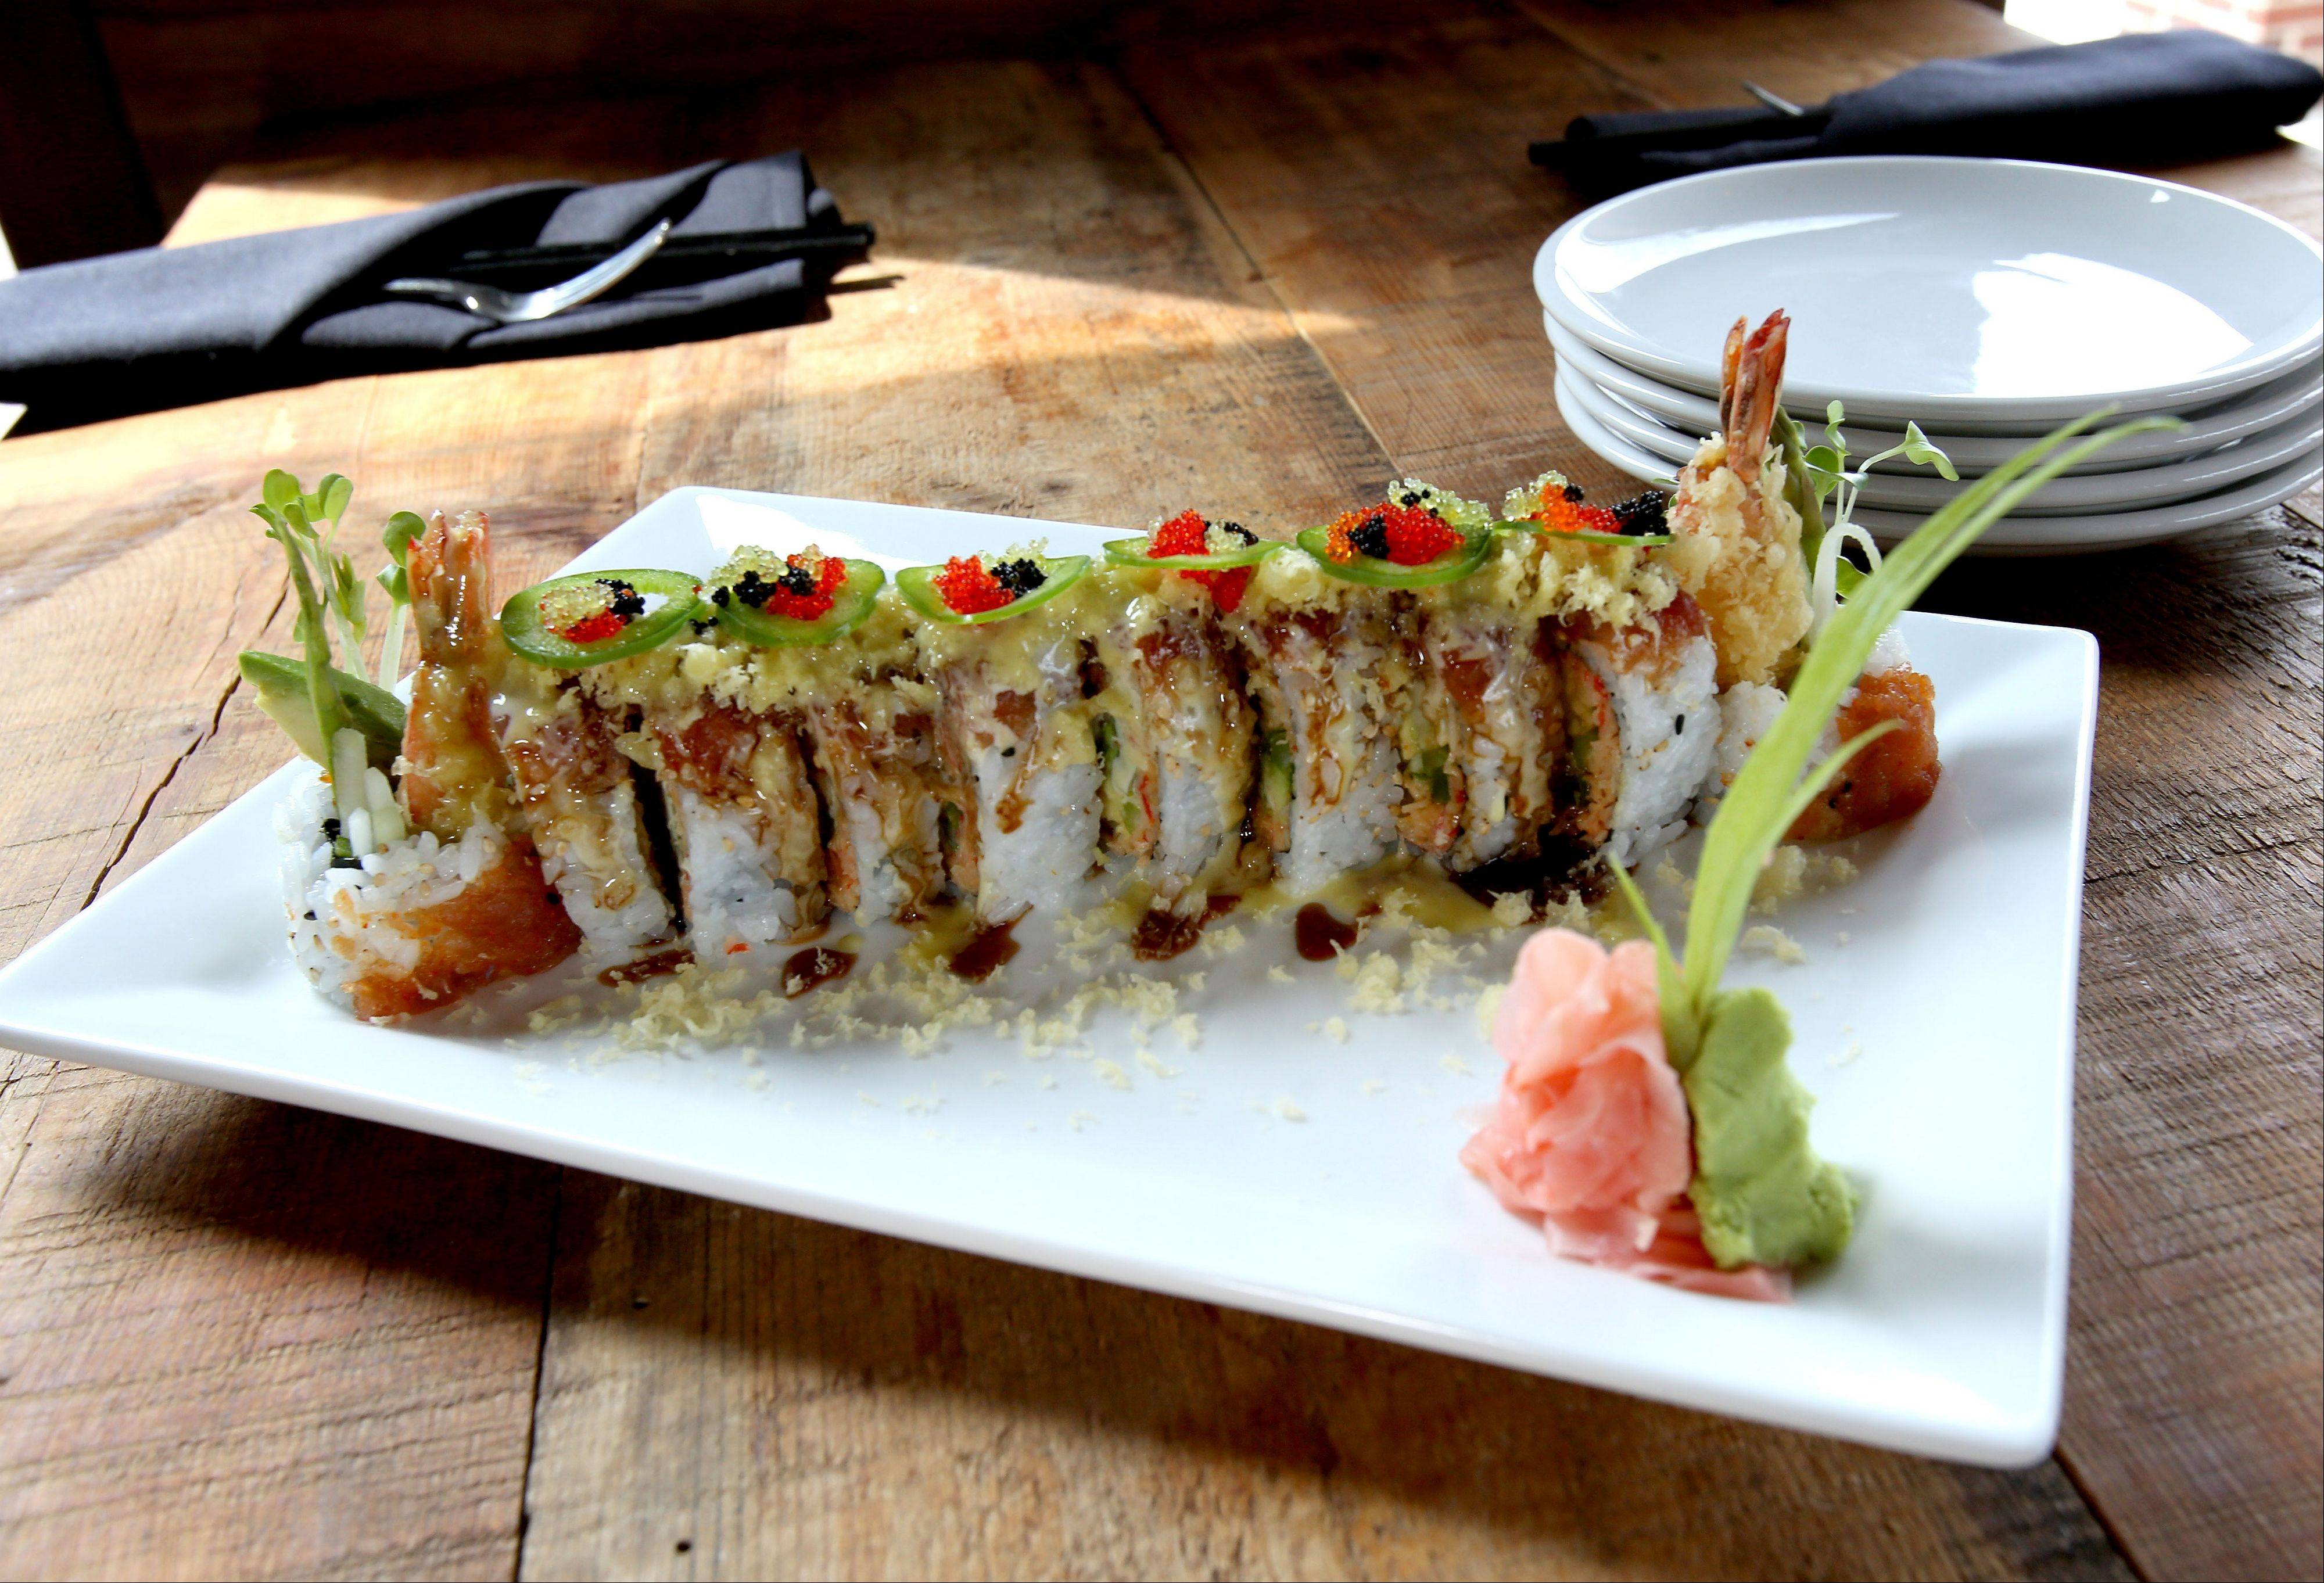 8,000 Miles' Roselle Roll brings together shrimp tempura, asparagus, jalape�o, avocado, cucumber and spicy crabmeat maki. It's topped with spicy tuna, tempura crunch and mixed tobikos and drizzled with eel sauce, honey wasabi and house spicy sauce.